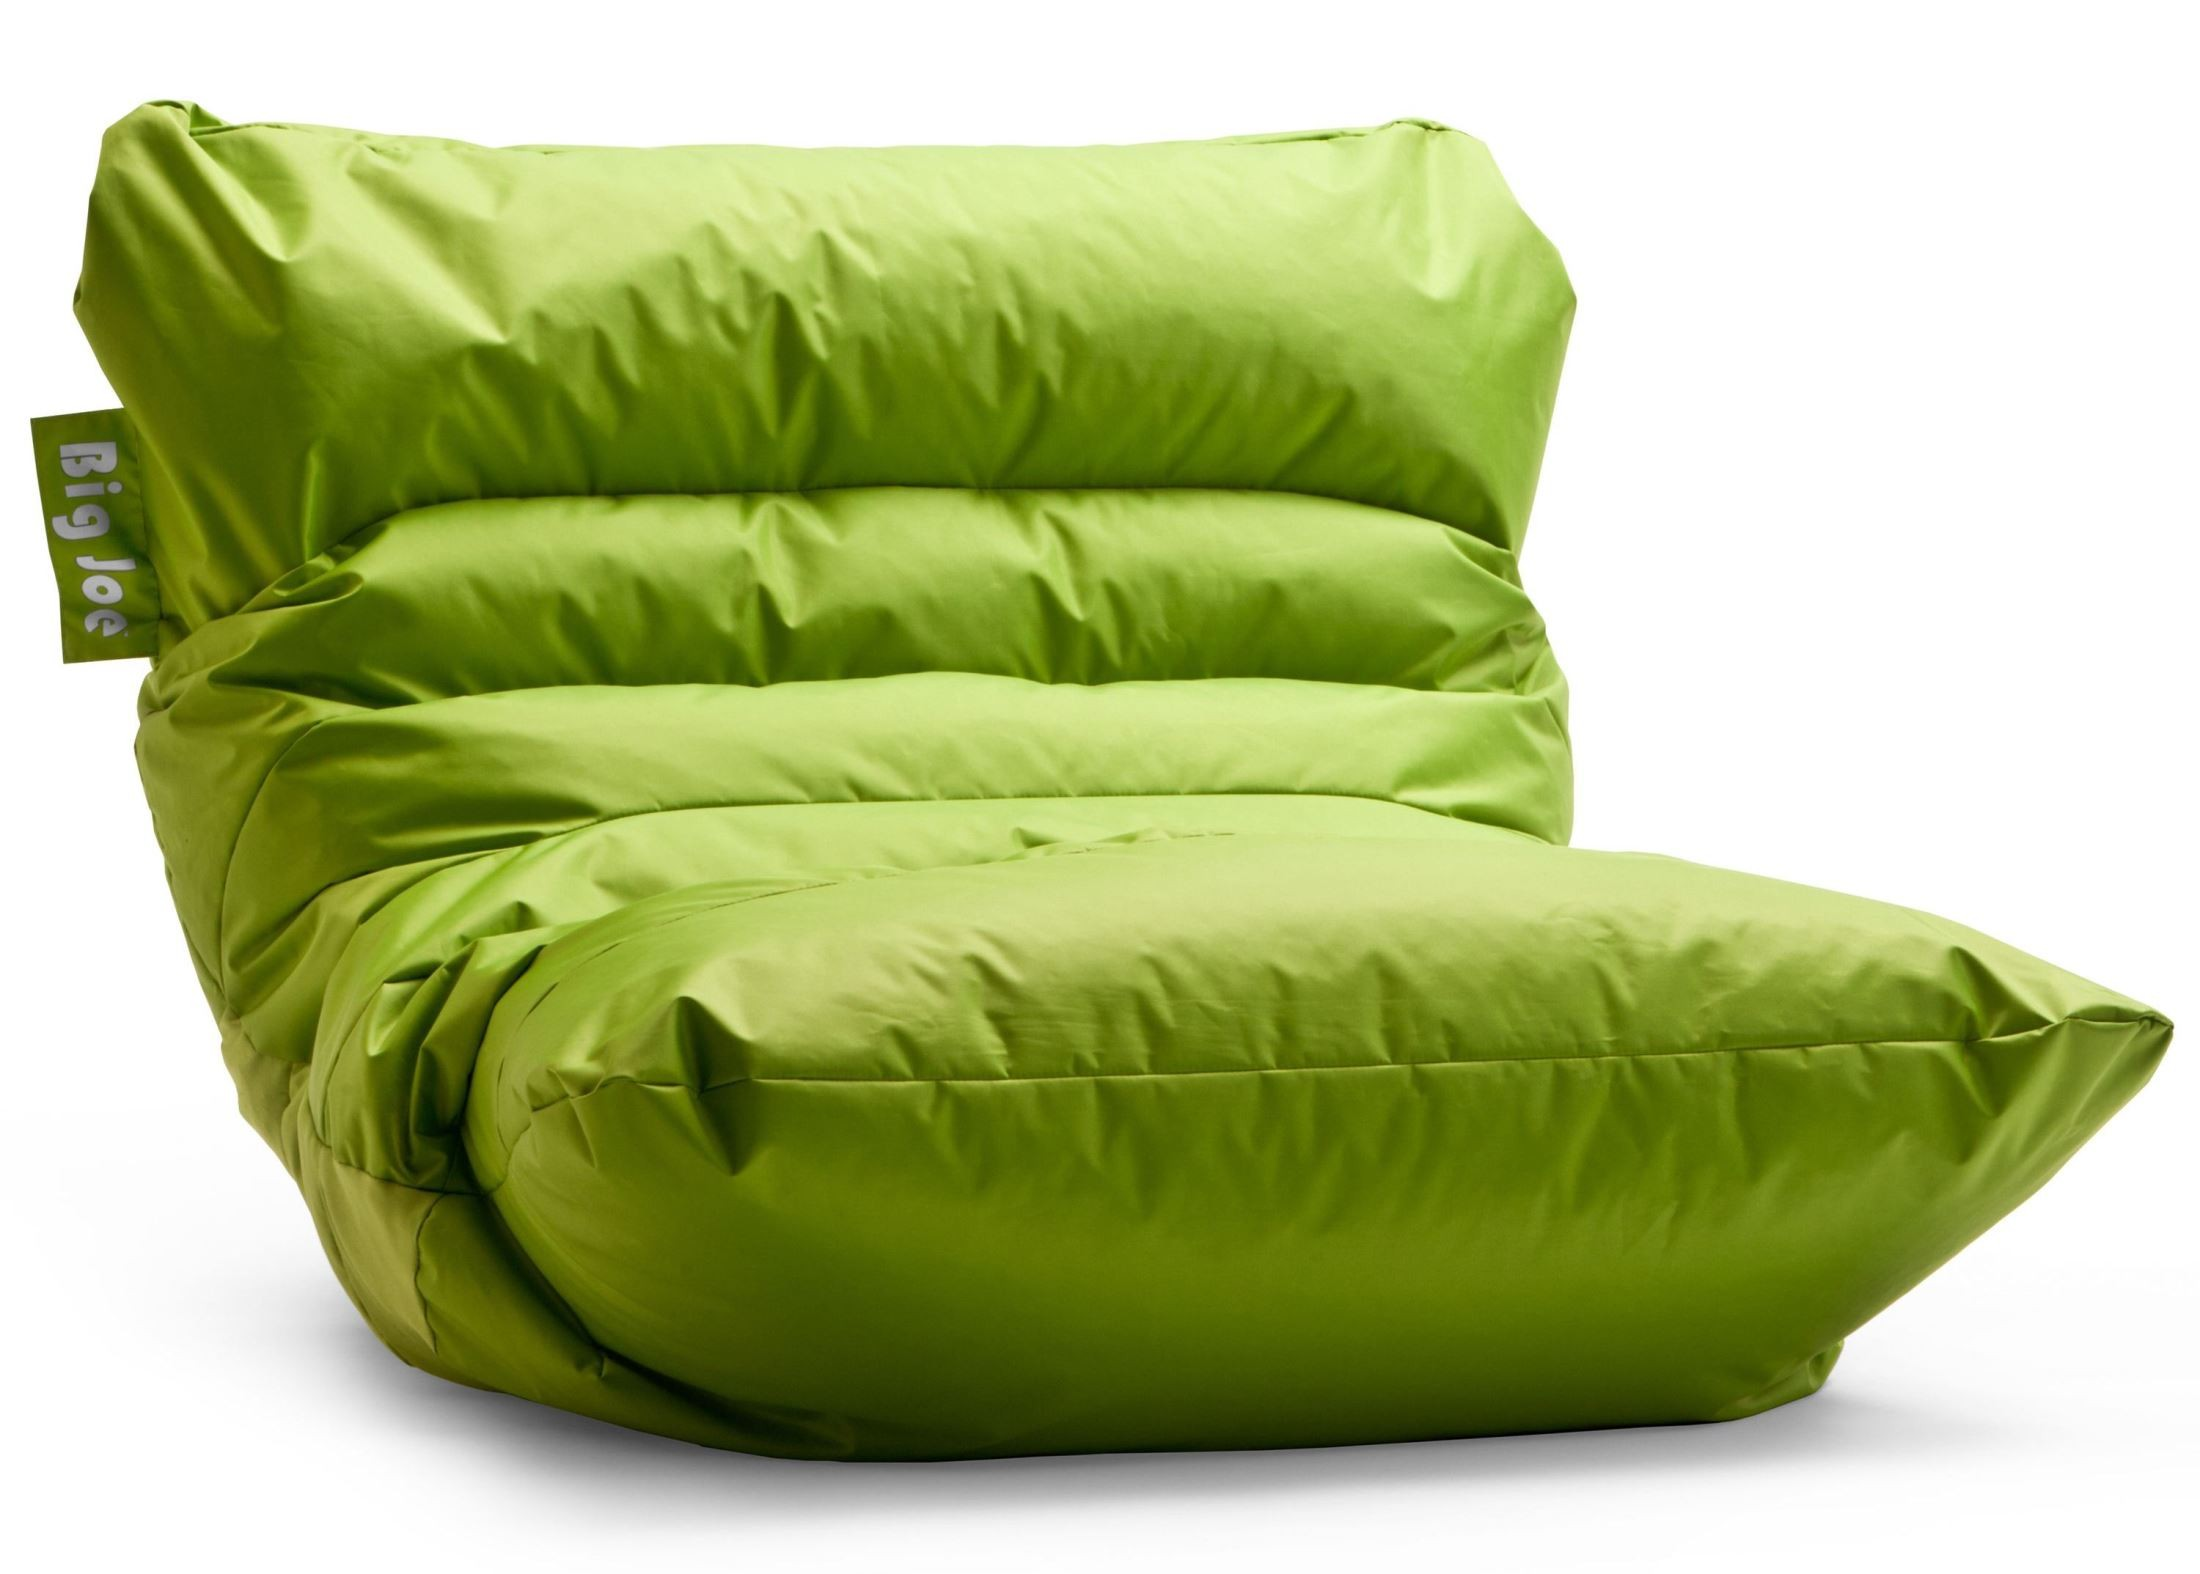 Big joe roma spicy lime smartmax bean bag chair from comfort research